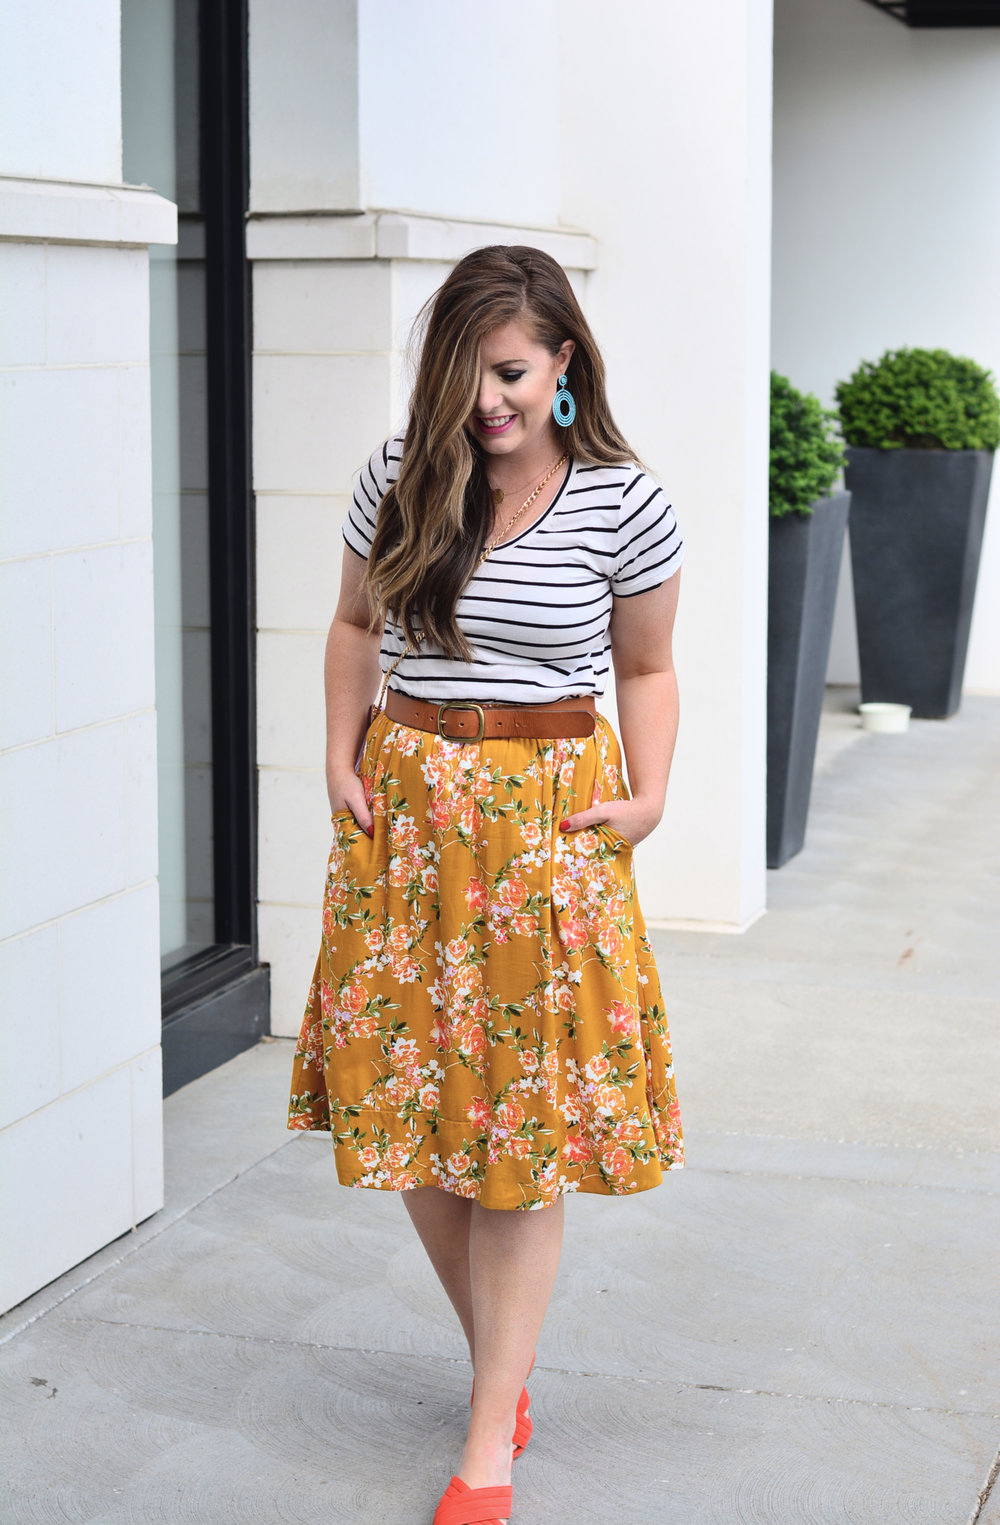 A great summer outfit